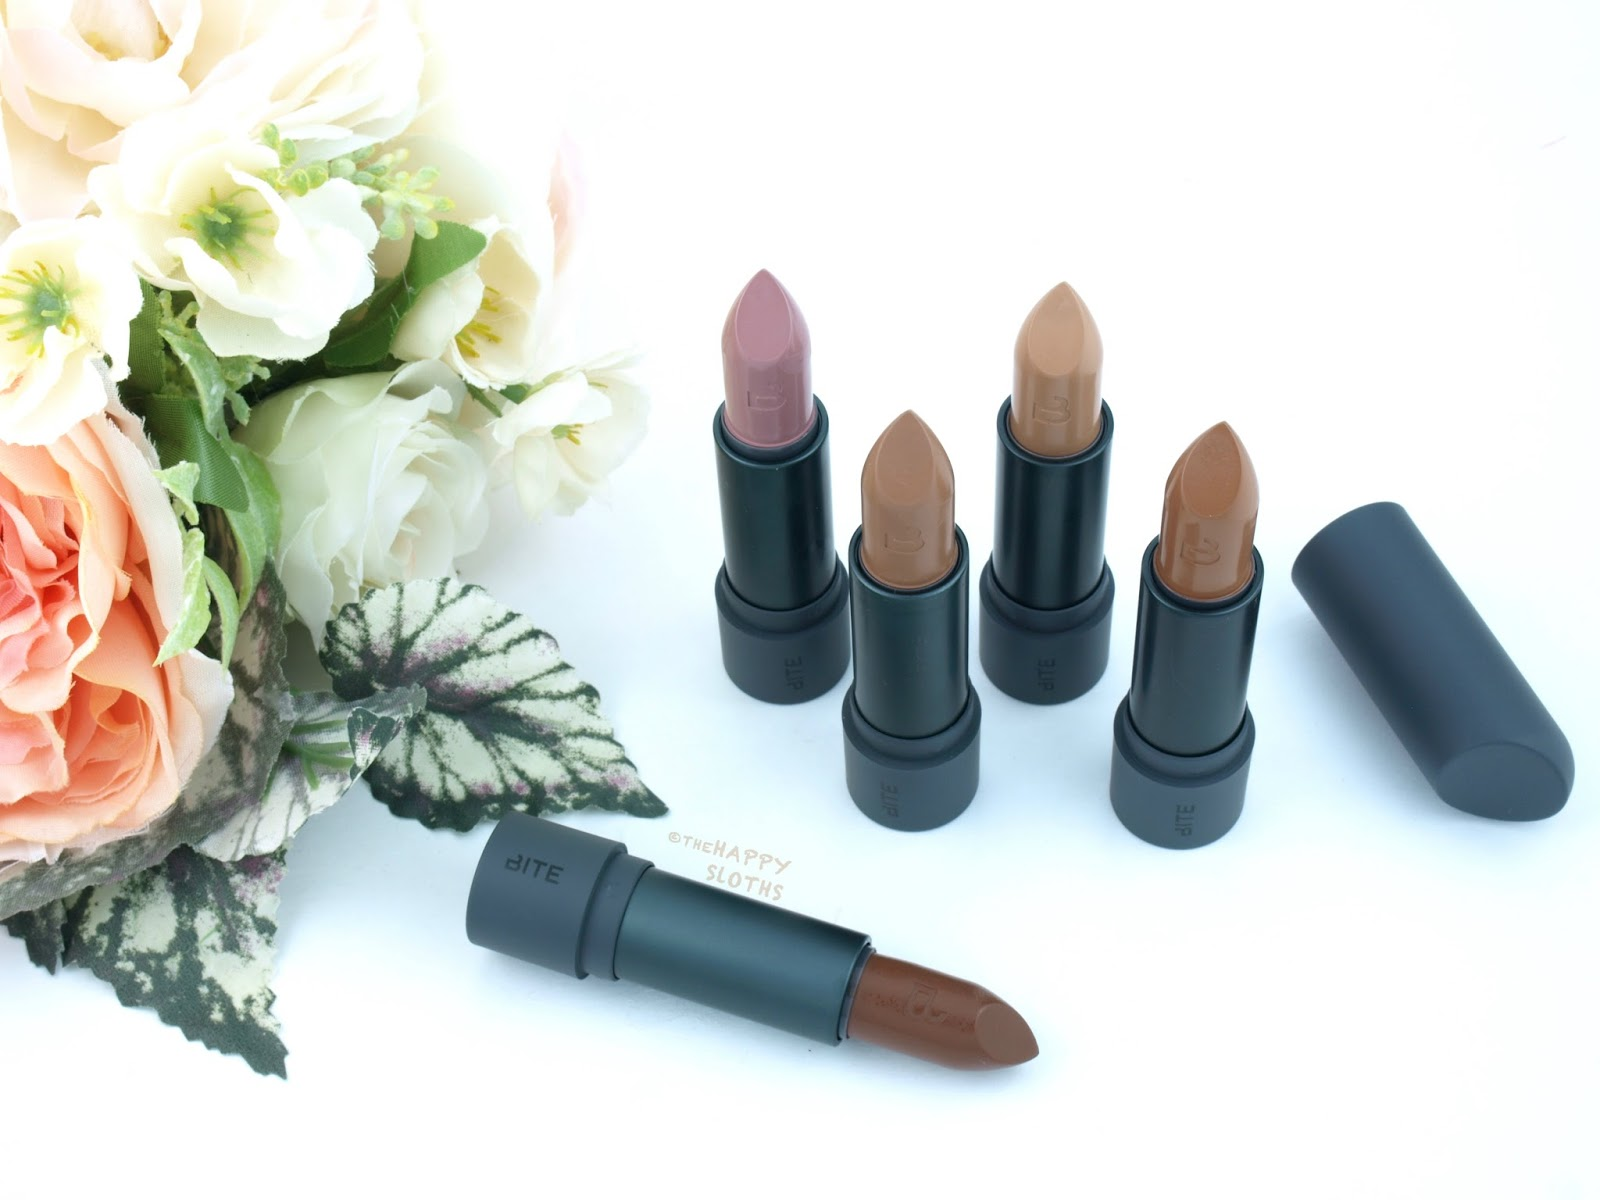 Bite Beauty Amuse Bouche Lipstick Edgy Neutrals Collection: Review and Swatches